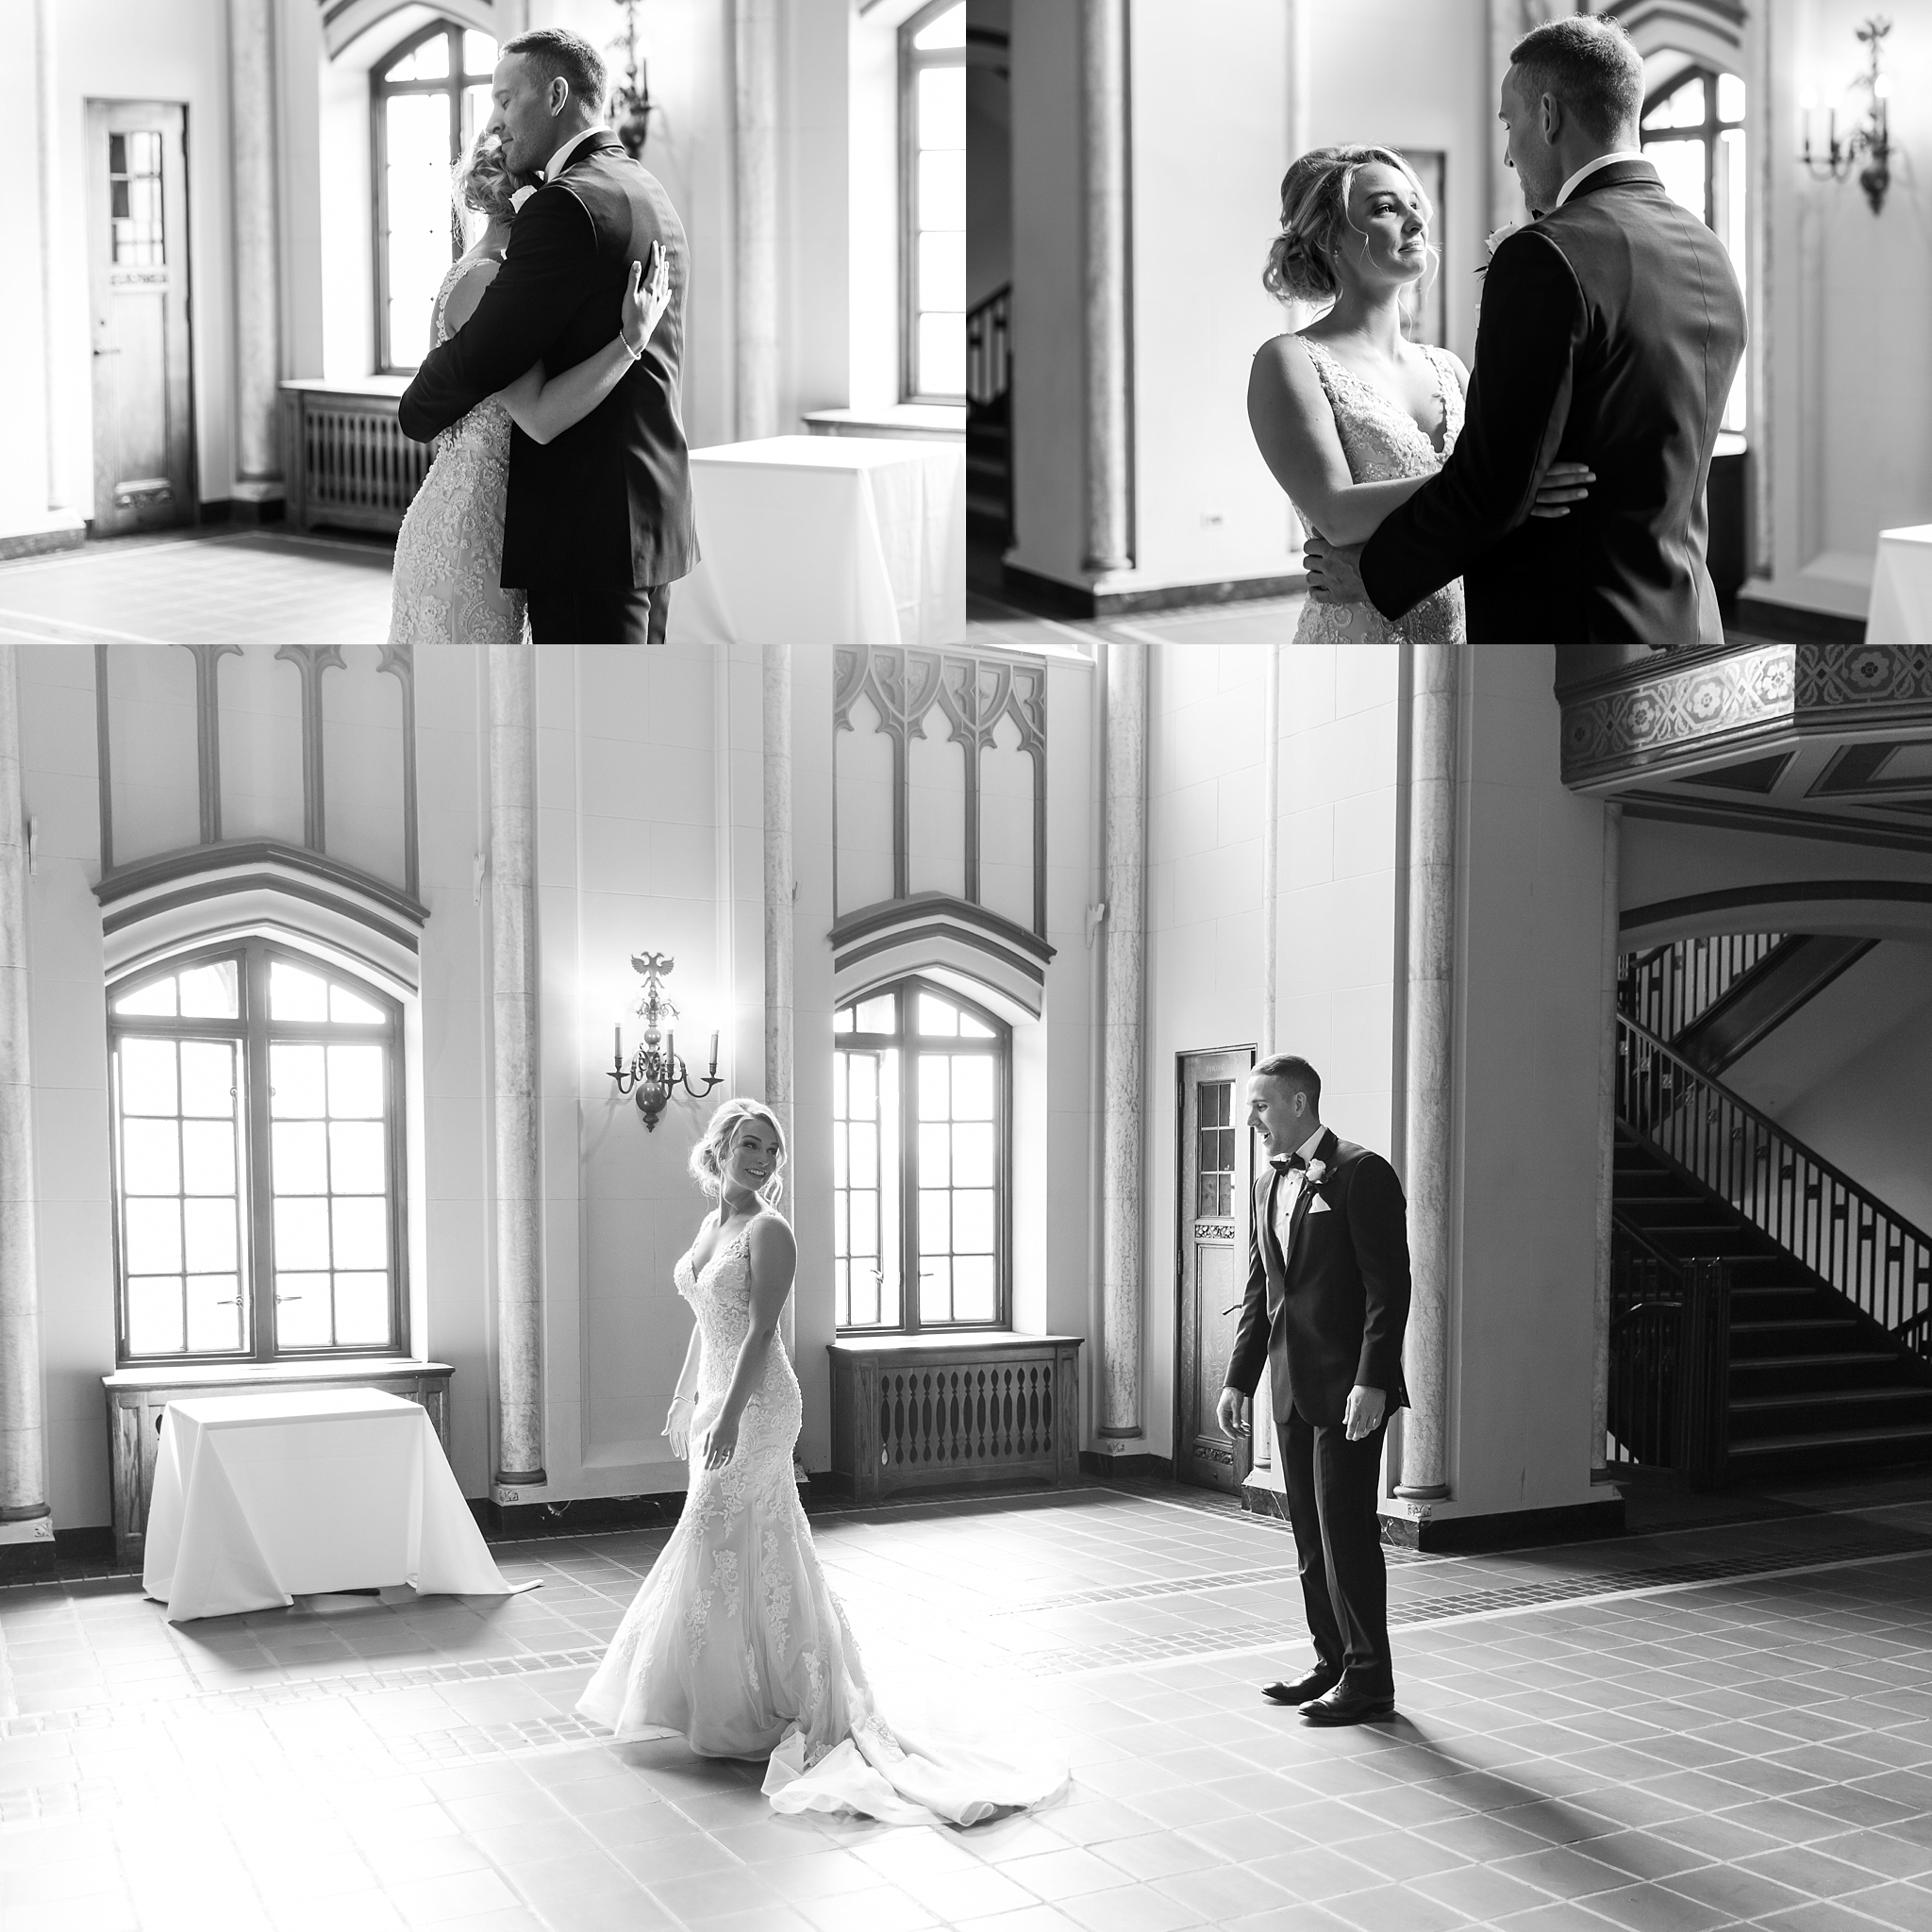 candid-romantic-wedding-photos-at-the-masonic-temple-belle-isle-detroit-institute-of-arts-in-detroit-michigan-by-courtney-carolyn-photography_0022.jpg